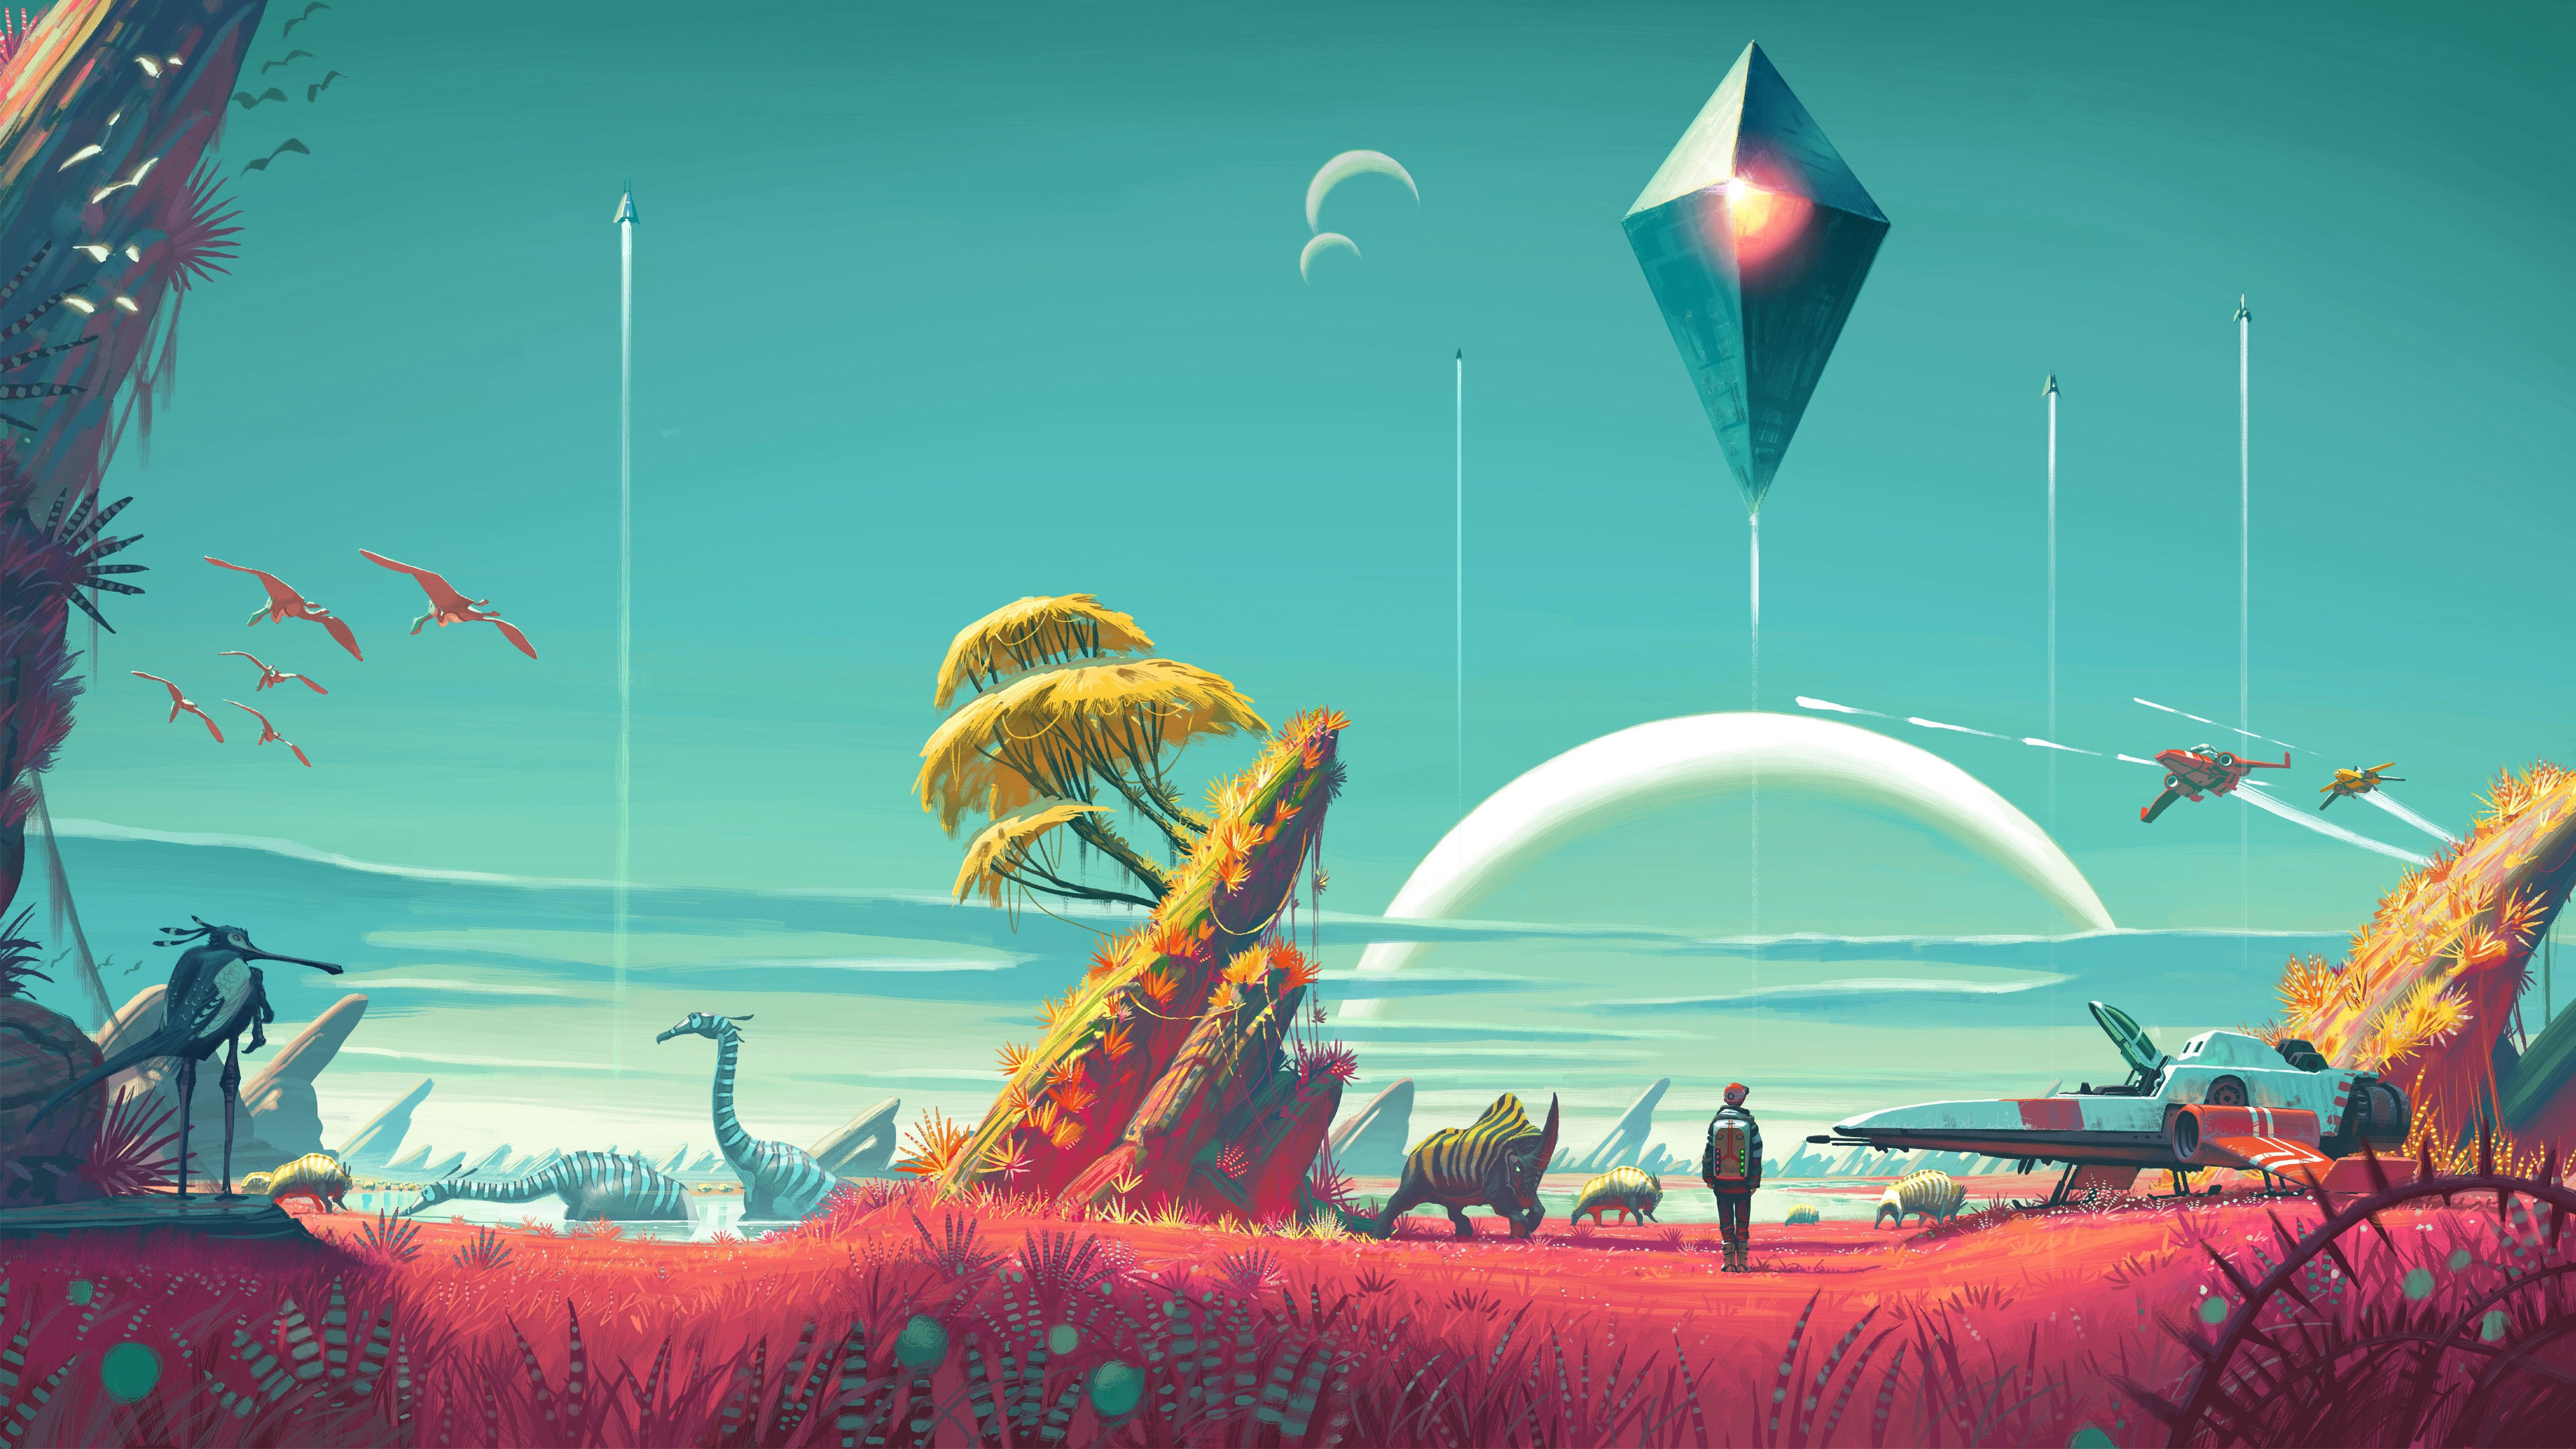 No Man's Sky 4K Wallpaper …